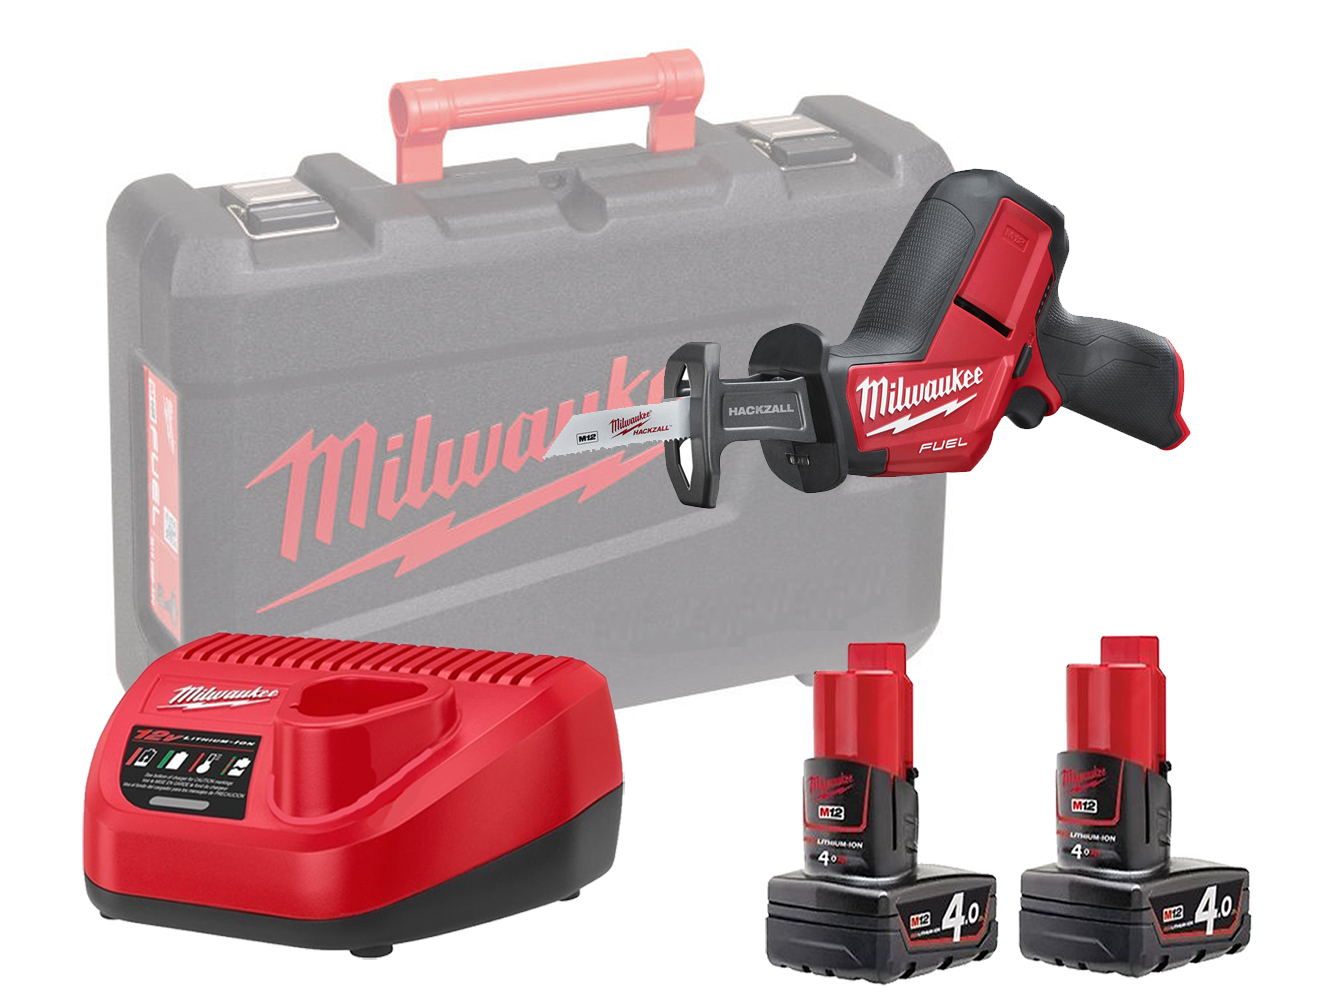 Milwaukee M12CHZ 12V Fuel Sub Compact Hackzall (Reciprocating Saw) - 4.0Ah Pack